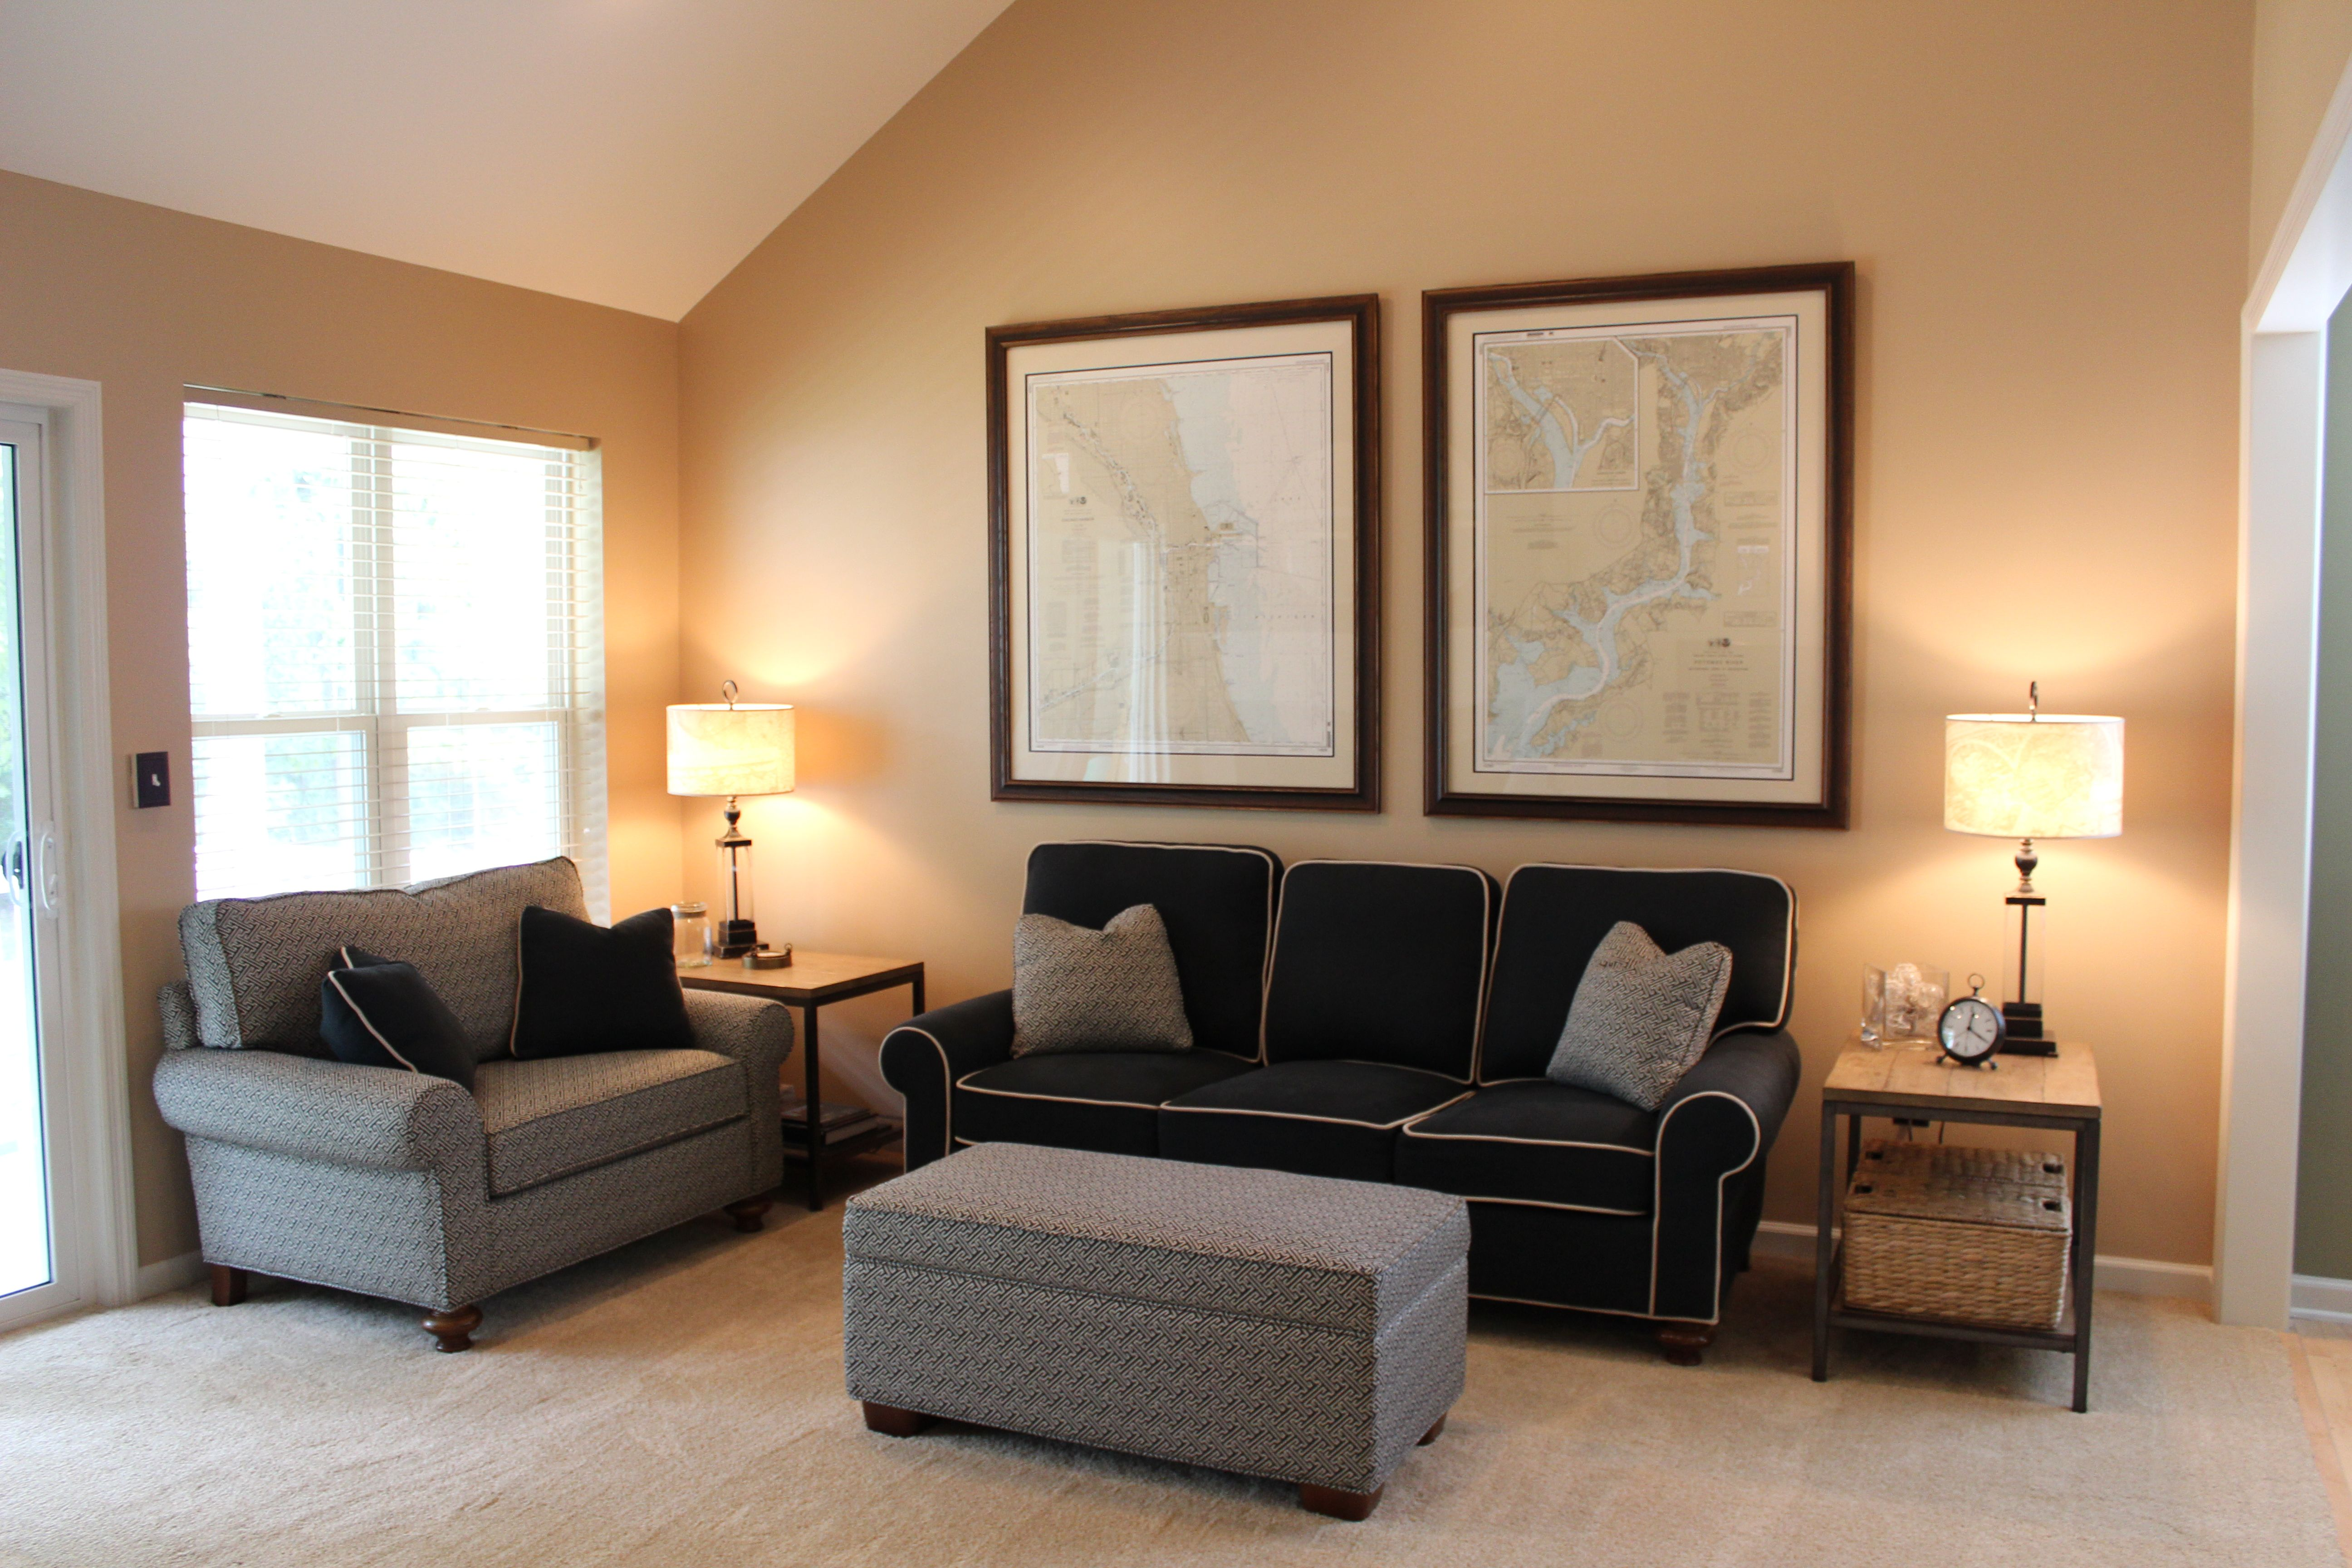 Best Paint Colors For Living Room Http Arrishomes Com 7408 640 x 480